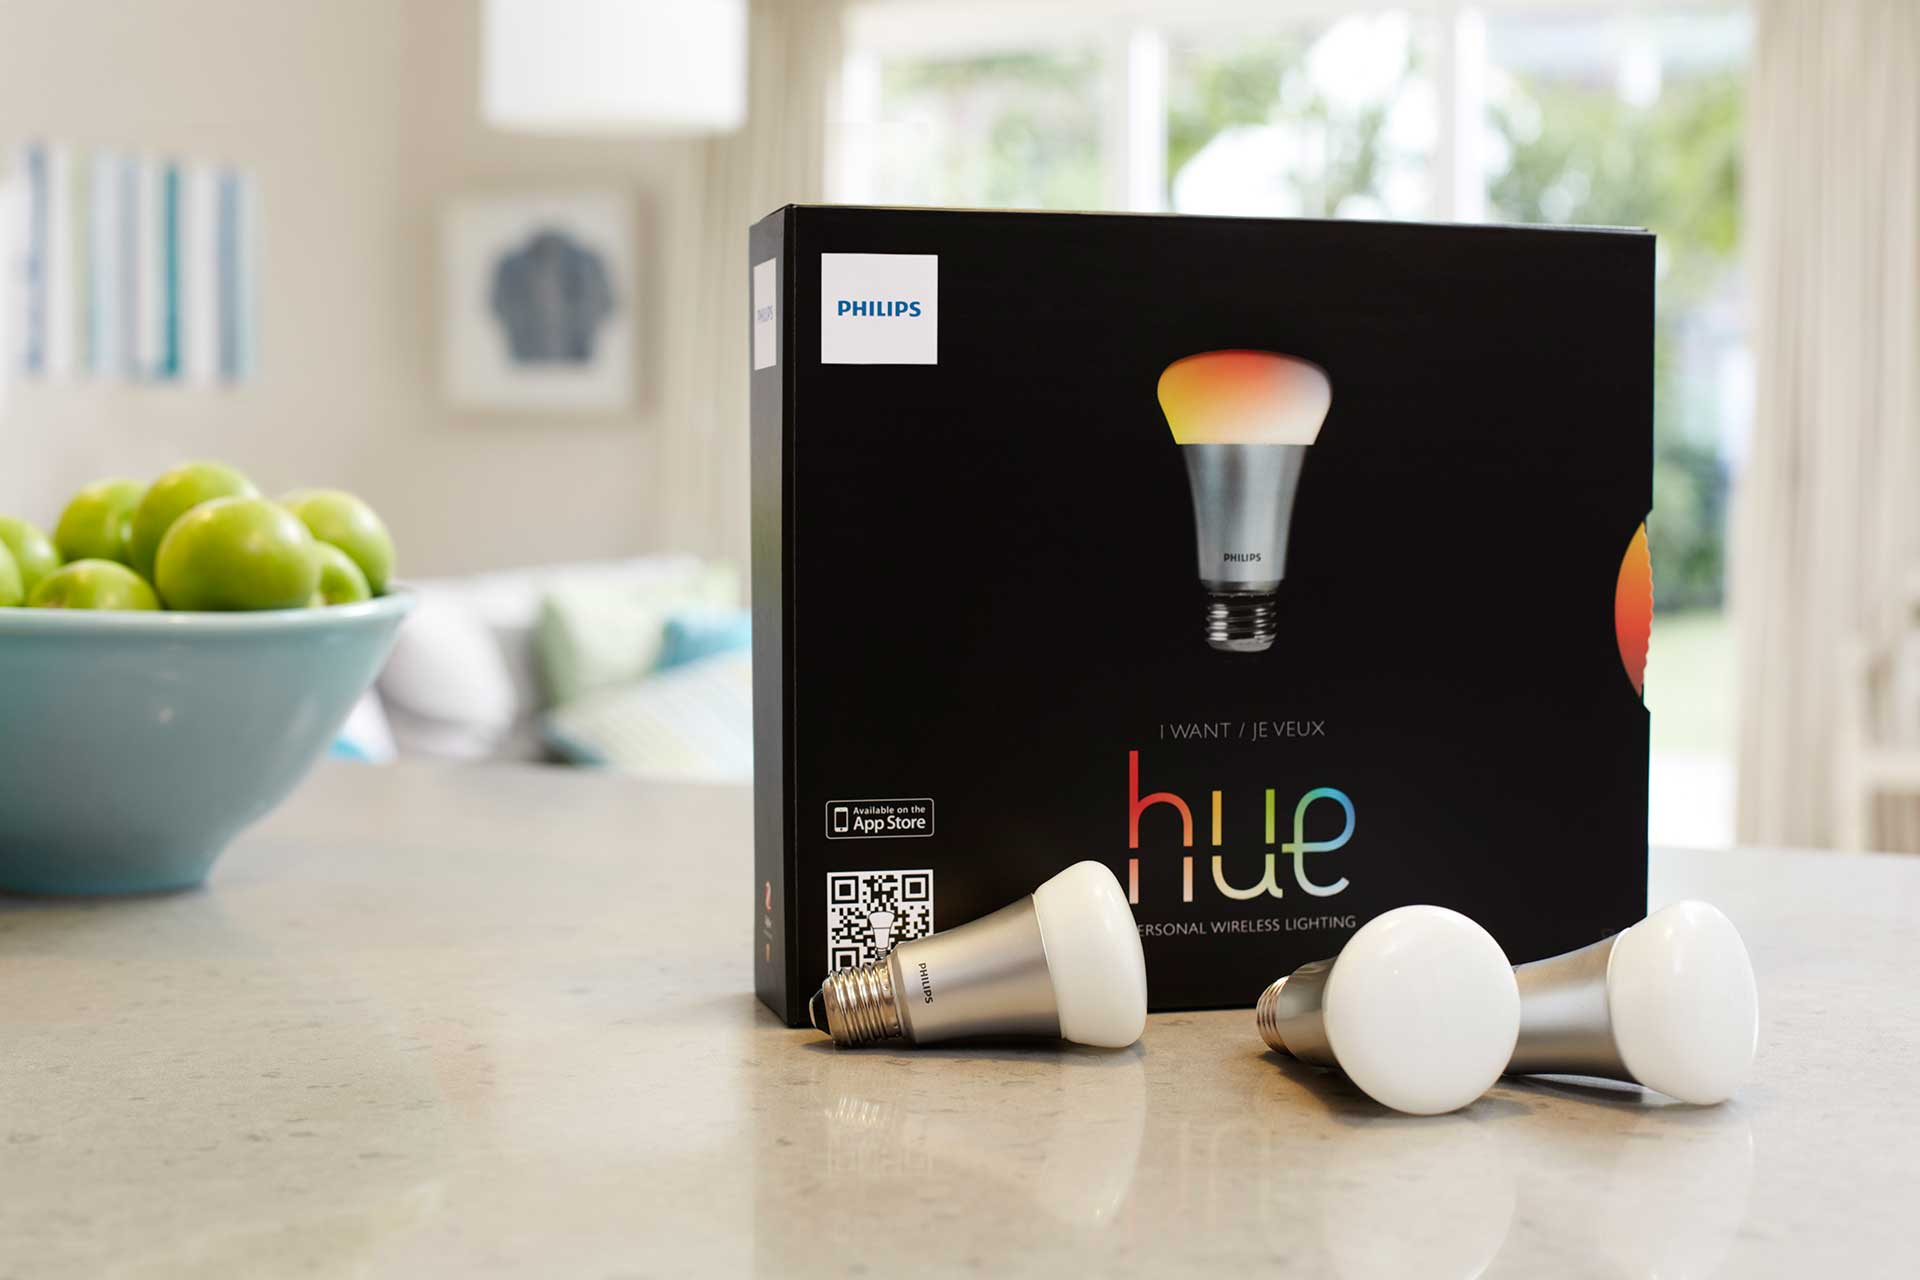 Philips Hue The Smart Lightbulb Exclusively Hitting Apple Stores On Oct 30